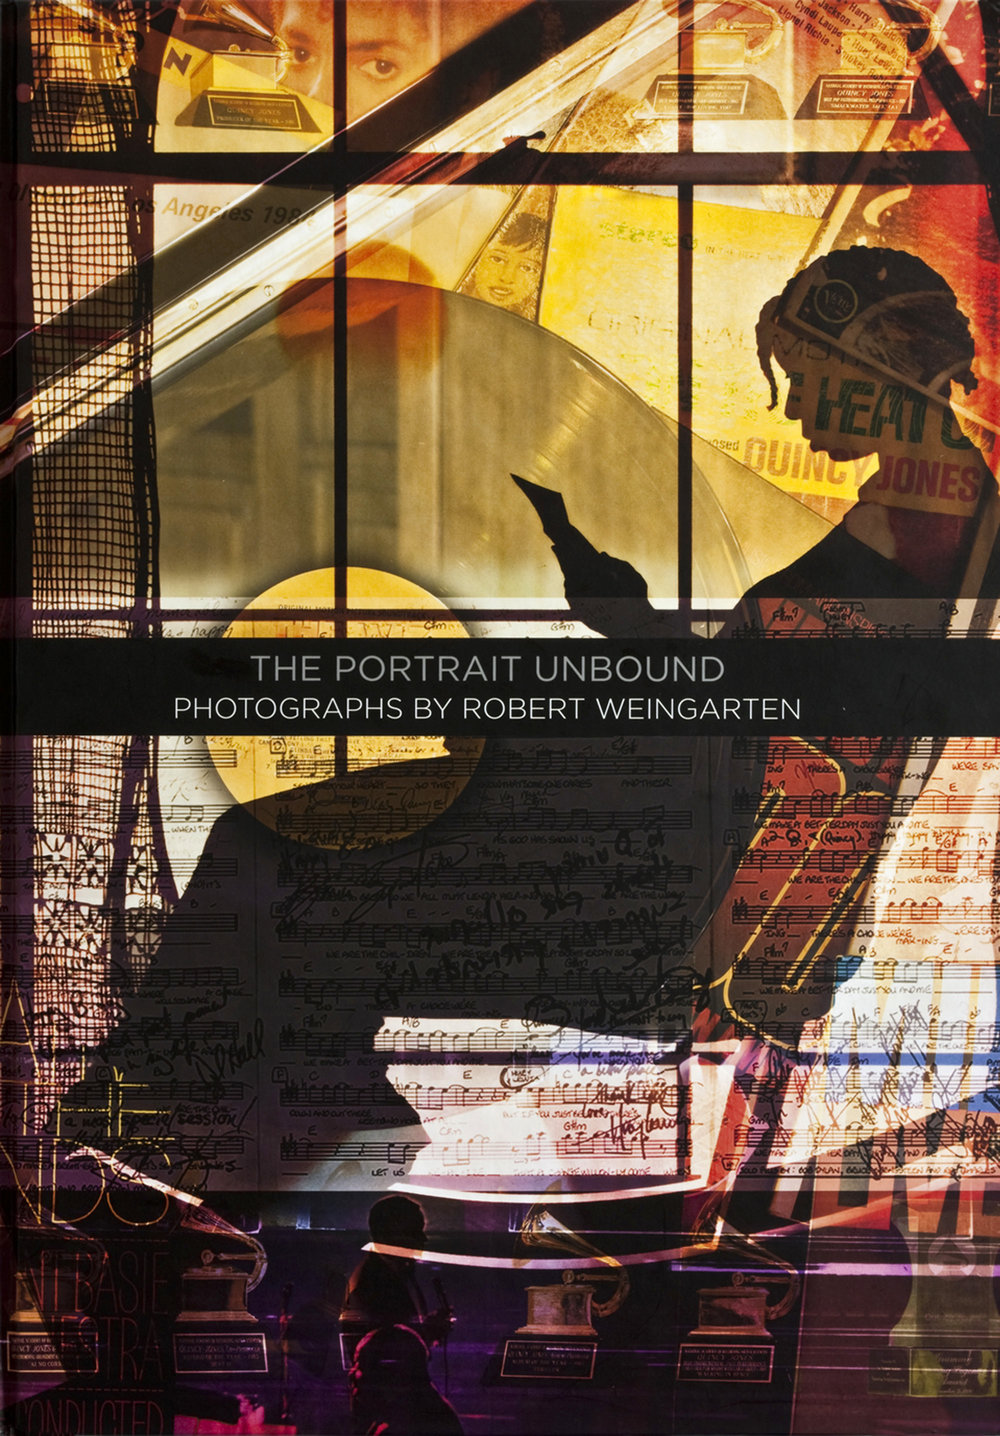 Robert Weingarten:The Portrait Unbound - Hardcover: 120 pagesPublisher: High Museum of ArtLanguage: EnglishForeword by Michael ShapiroEssay by Julian Cox, New Frontiers: The Photographs of Robert WeingartenAfterword by Robert WeingartenISBN-10: 1932543333ISBN-13: 978-1932543339Catalogue of exhibition High Museum of Art Jan 23-May 30, 2010Product Dimensions: 12.7 x 9.2 x 0.7 inches